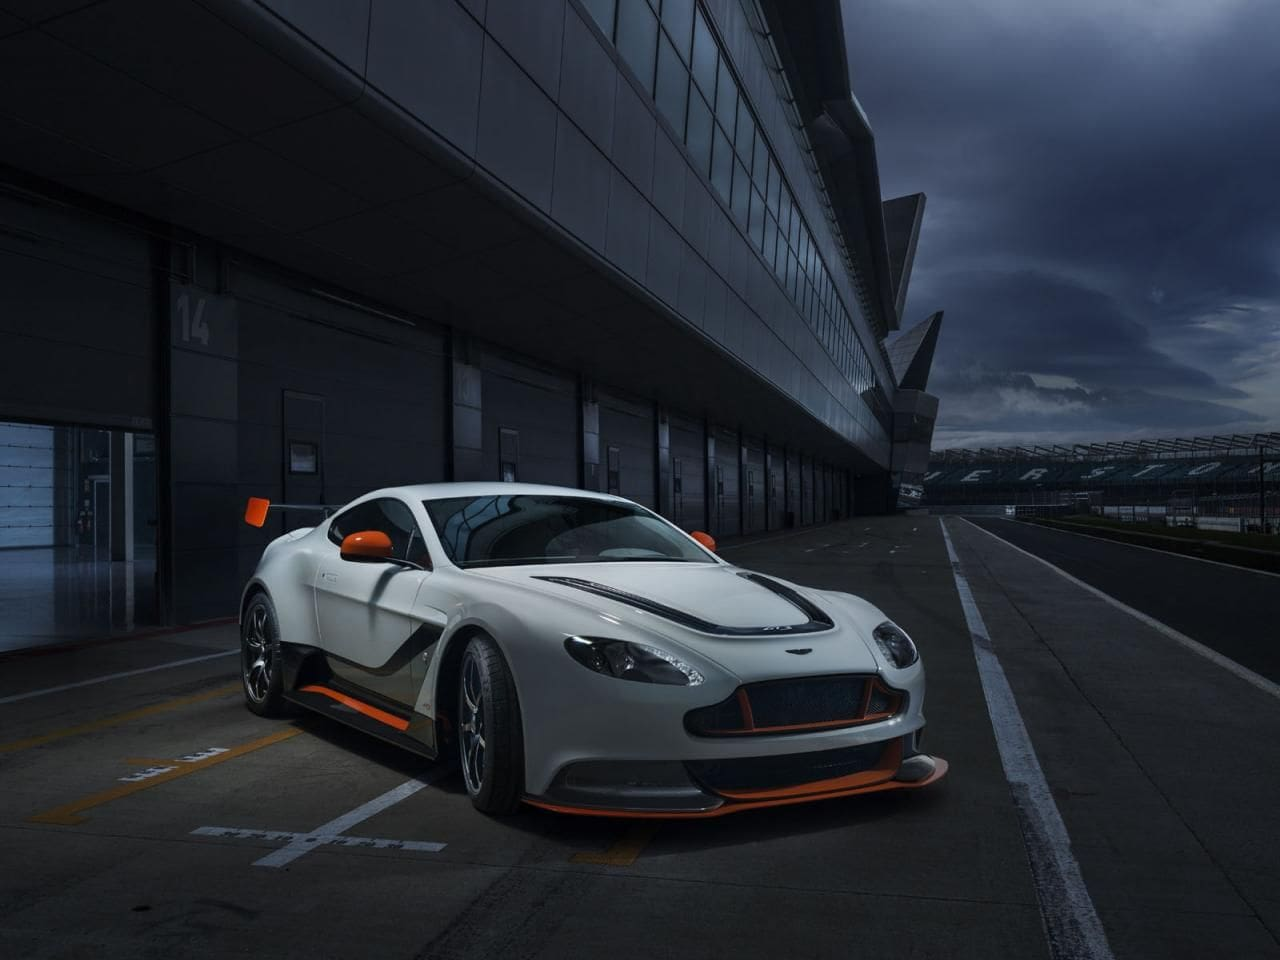 GT3 Special Edition: Aston Martin's most potent Vantage ever!